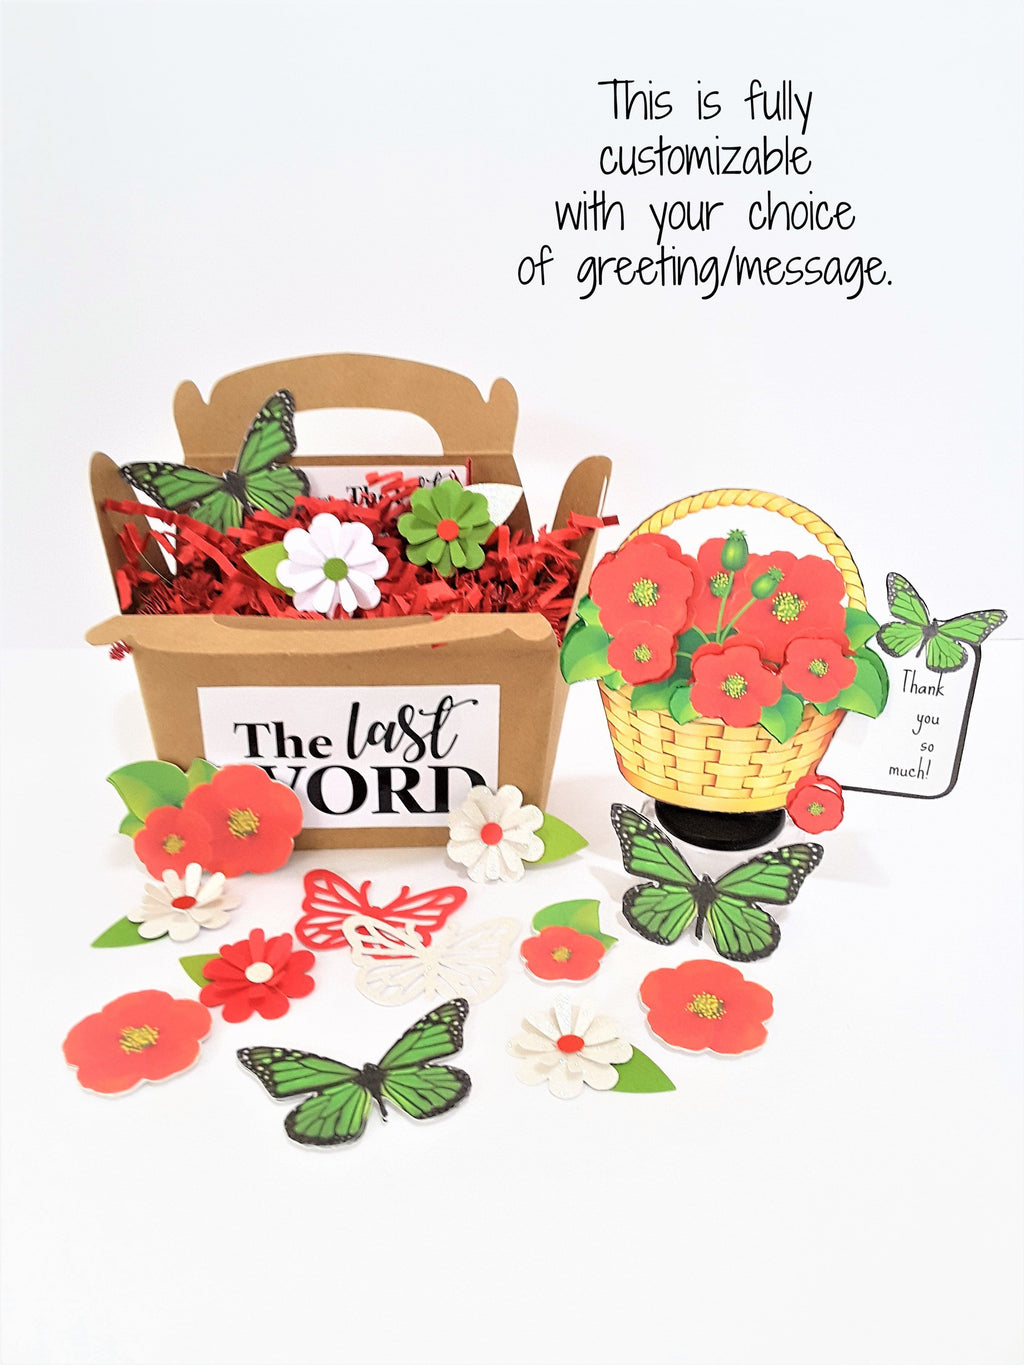 BASKET OF RED FLOWERS 3D GREETING CARD GIFT - your choice of captions